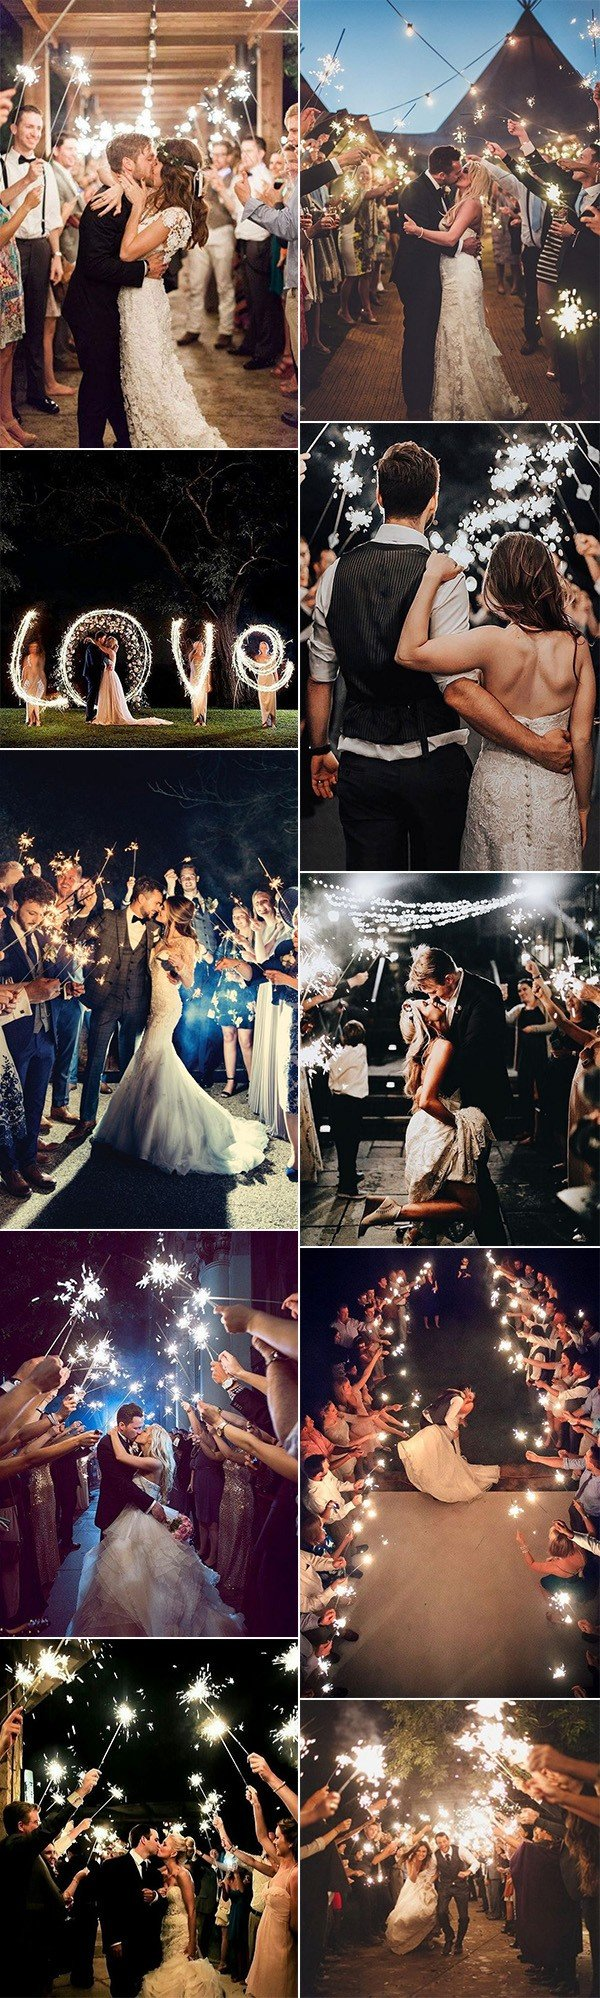 wedding sparklers send off Archives - Oh Best Day Ever